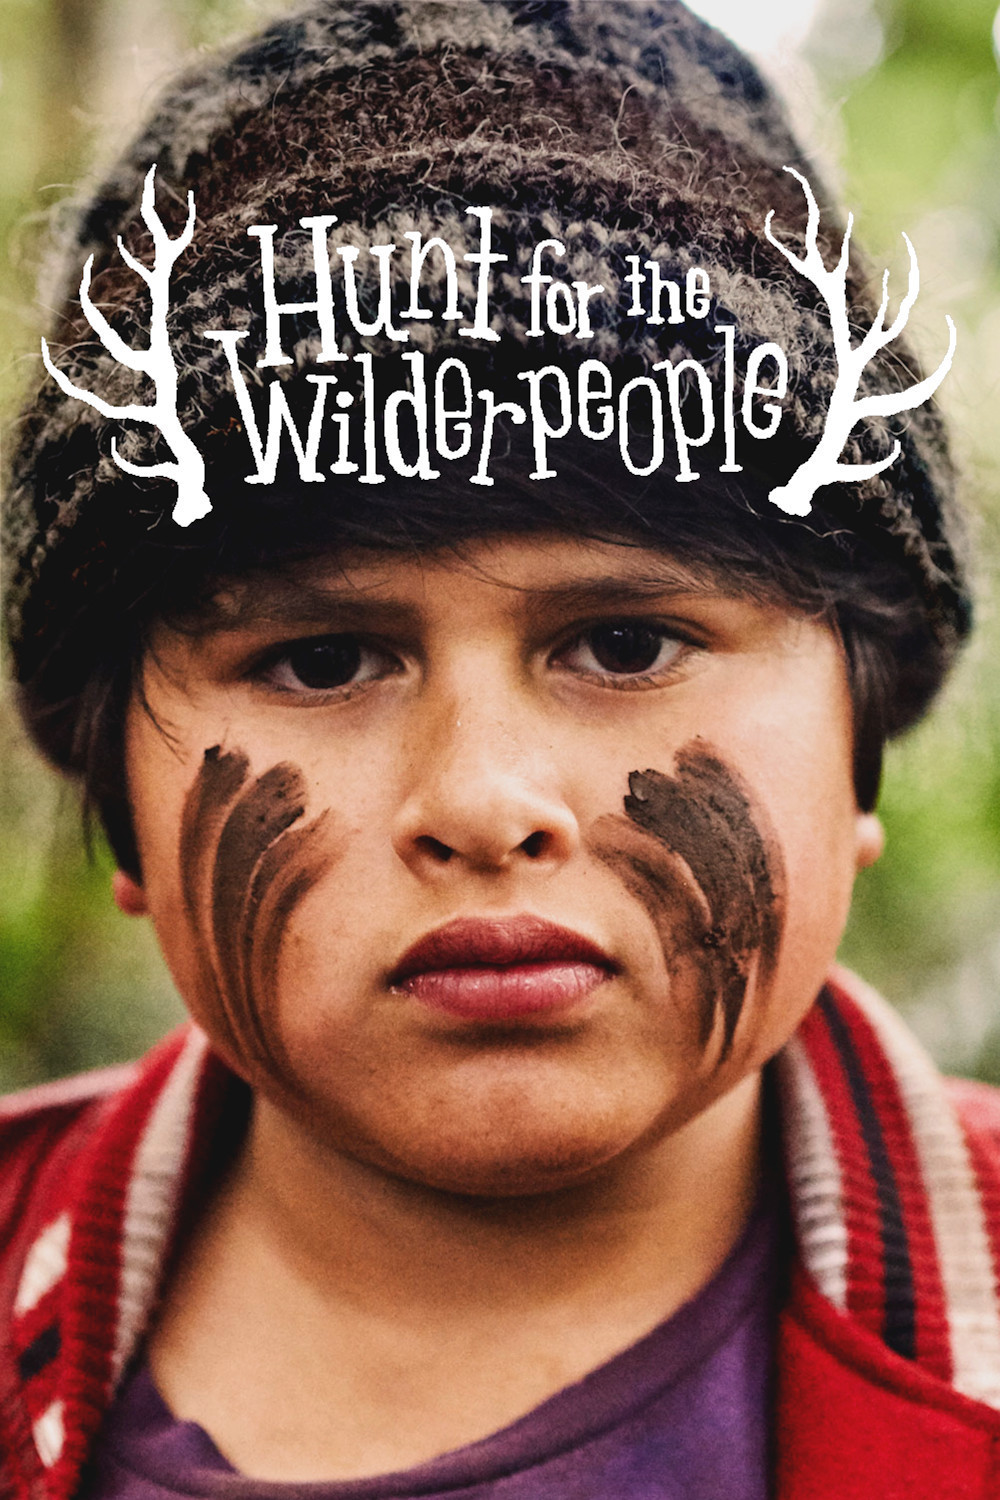 """Hunt for the Wilderpeople - Shit just got real. This movie is a masterpiece. Watch it (it's on Netflix). Laughs will ensue.*if you like this, DEFINITELY watch Taika's other films: """"Eagle vs. Shark"""" and """"What We Do in the Shadows"""""""